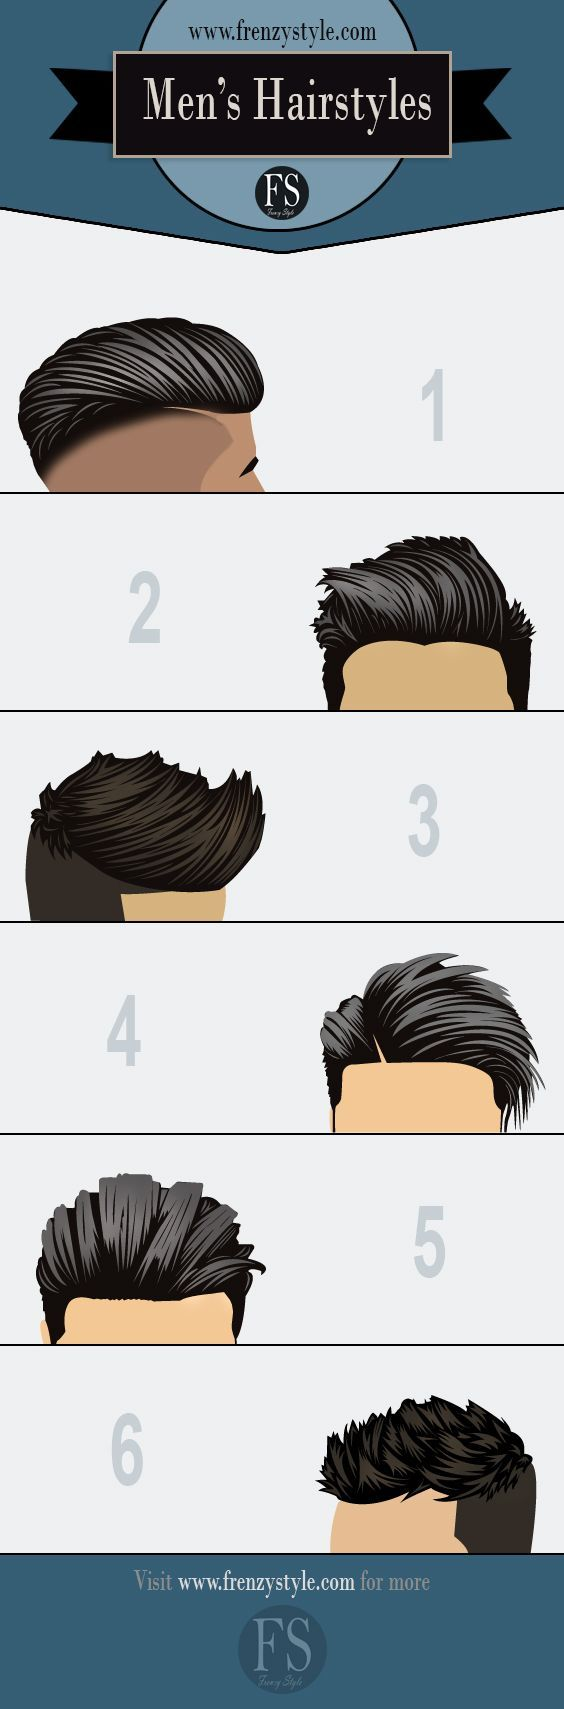 Stylish haircuts for men with thick hair  hairstyles for thick hair menus  haircuts mens hair and hair cuts